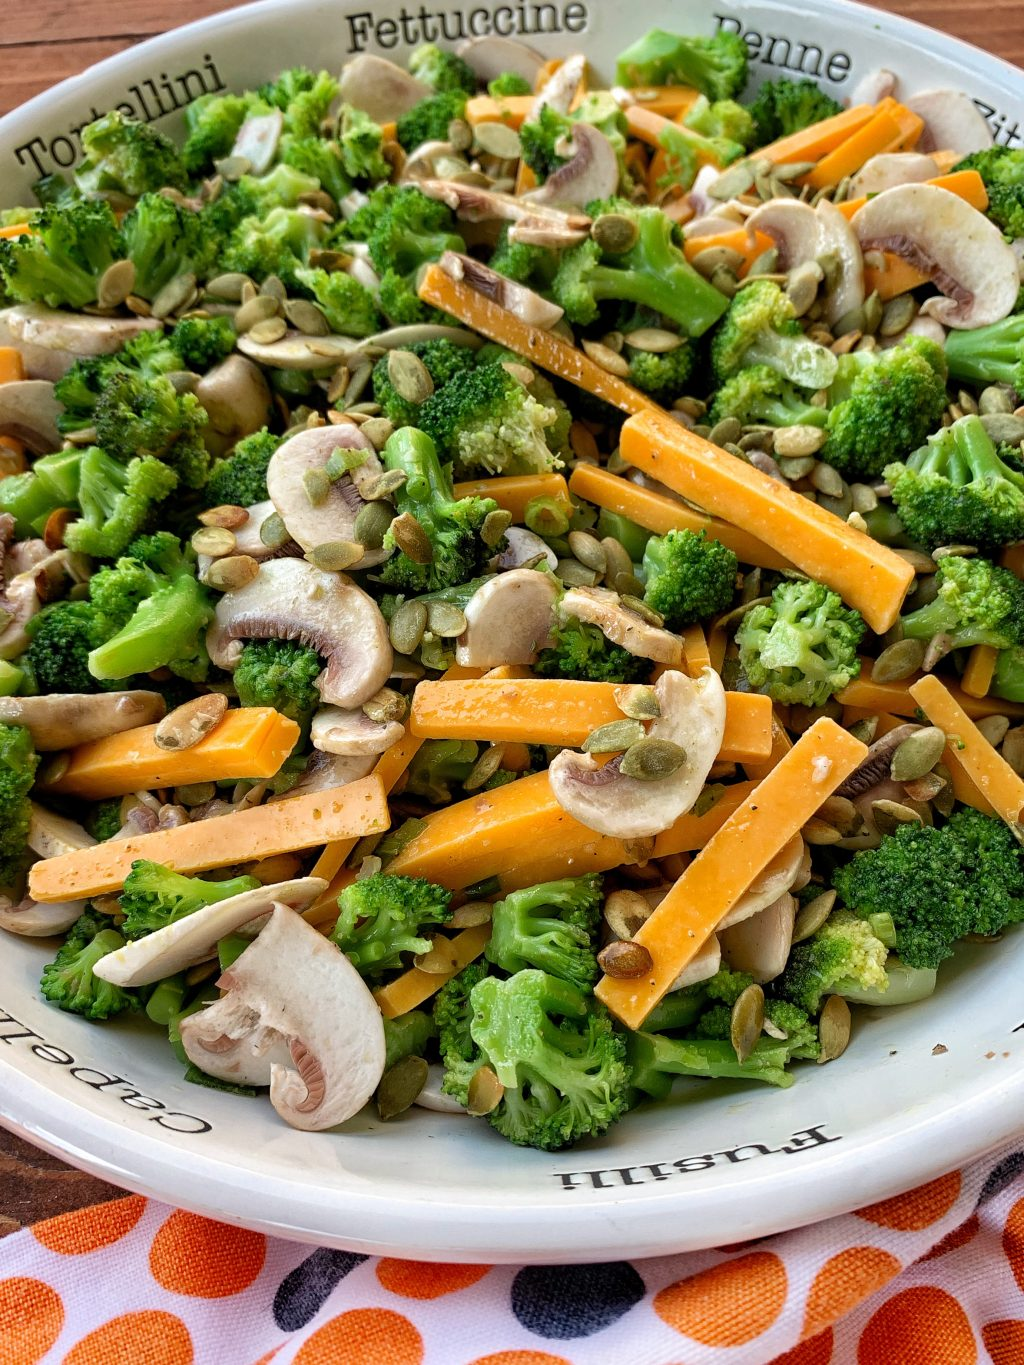 white bowl with bright green broccoli, cheddar cheese slices and mushrooms